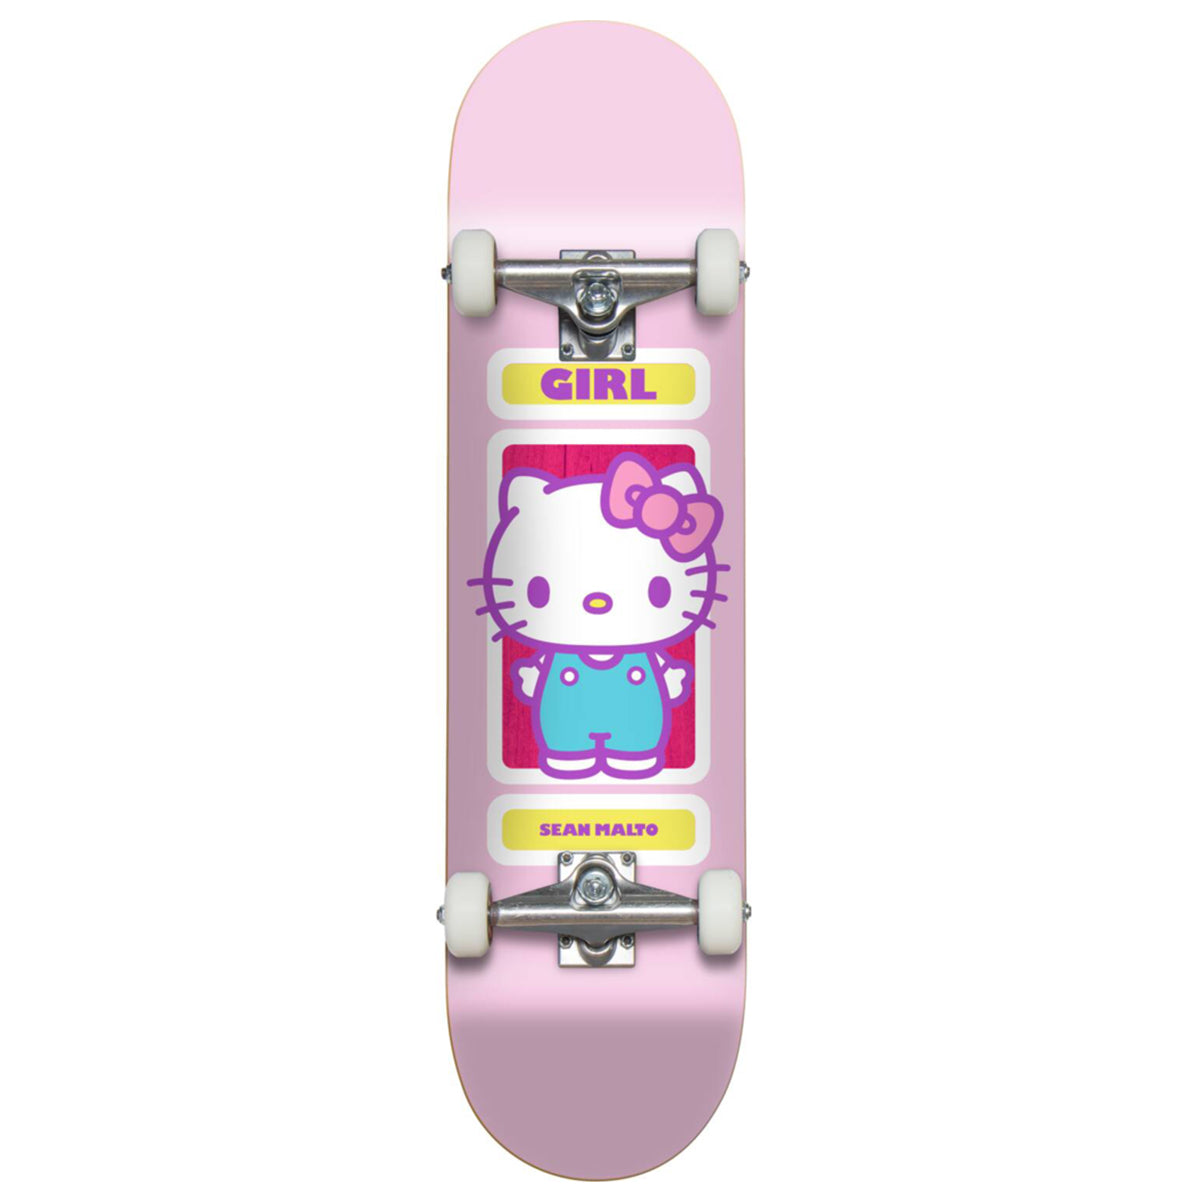 Girl Complete - Sean Malto Sanrio 60th | Underground Skate Shop